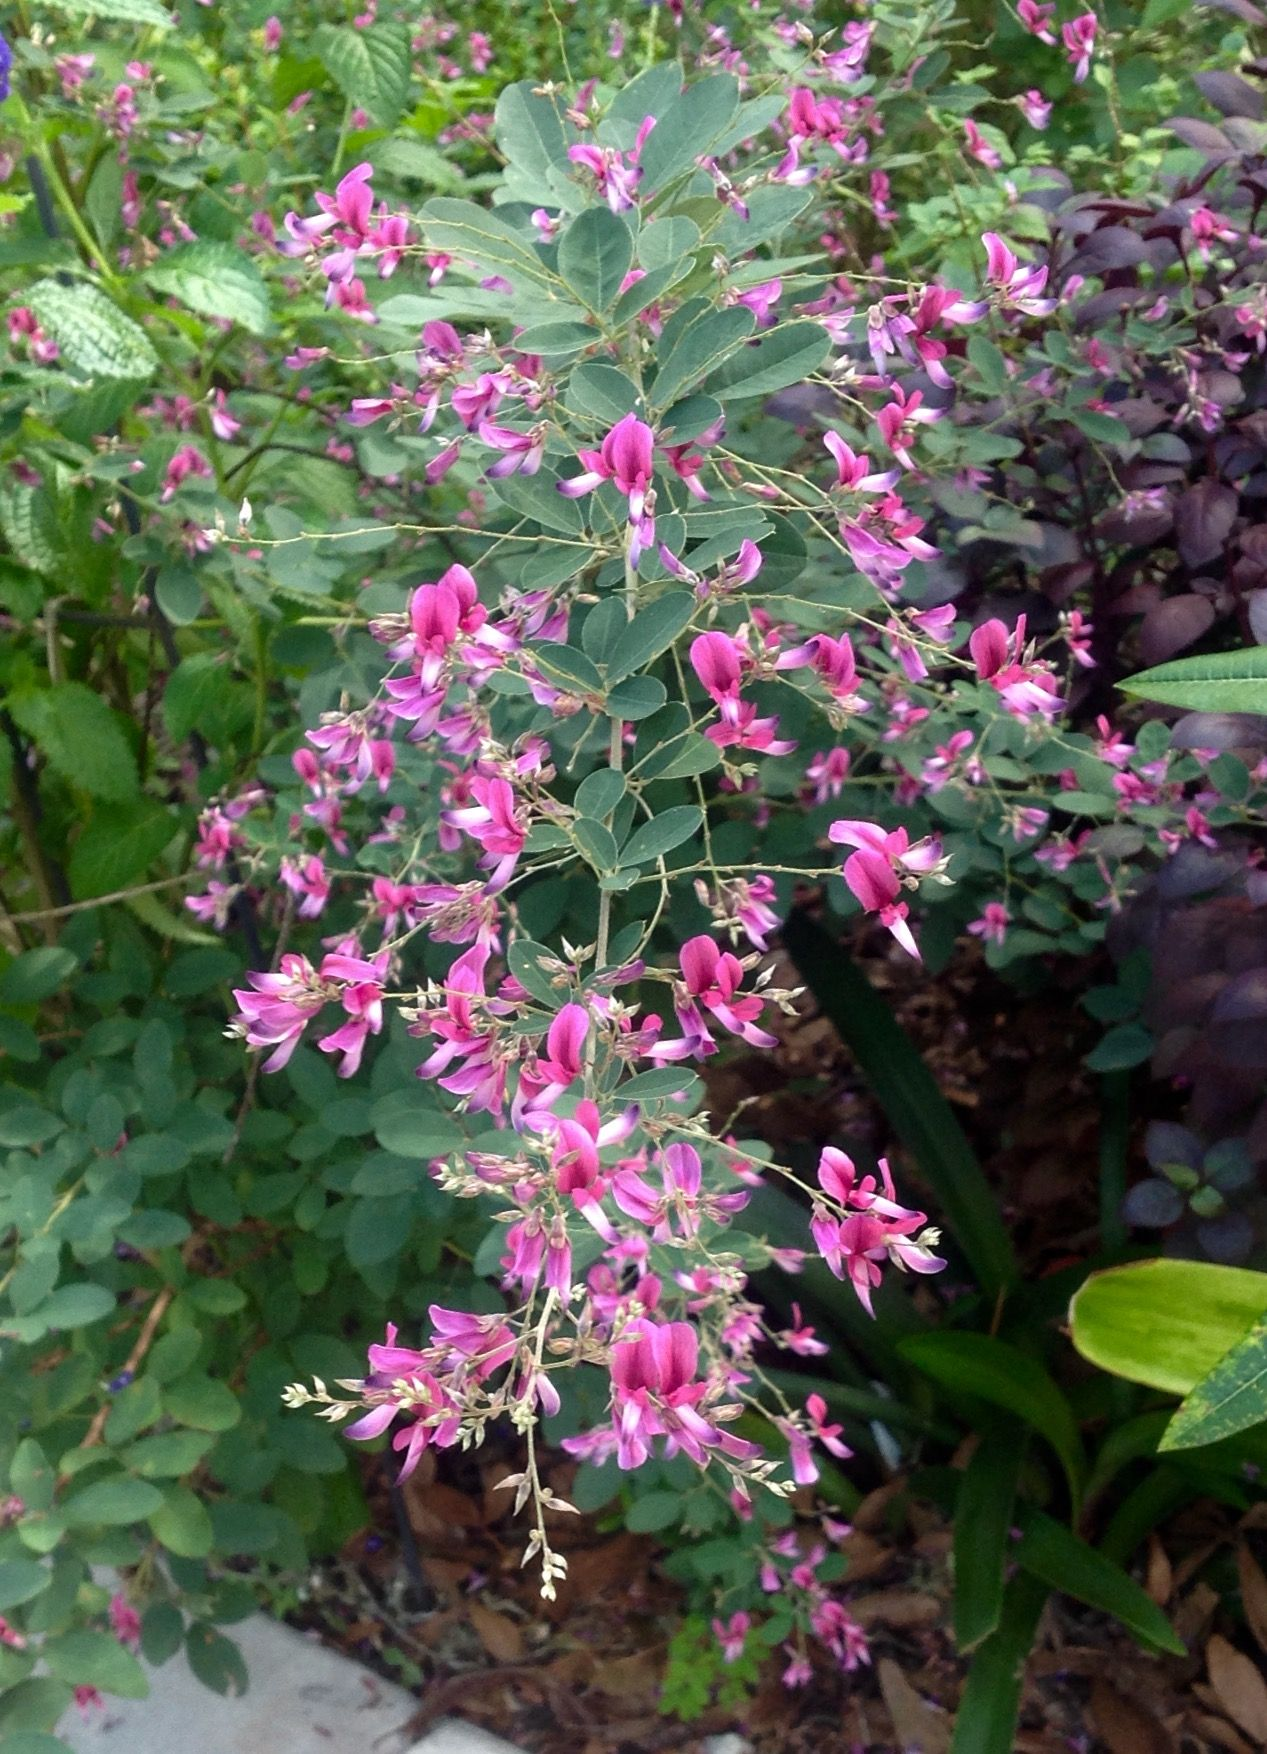 Lespedeza bicolor, flowers in May and September/ October ...